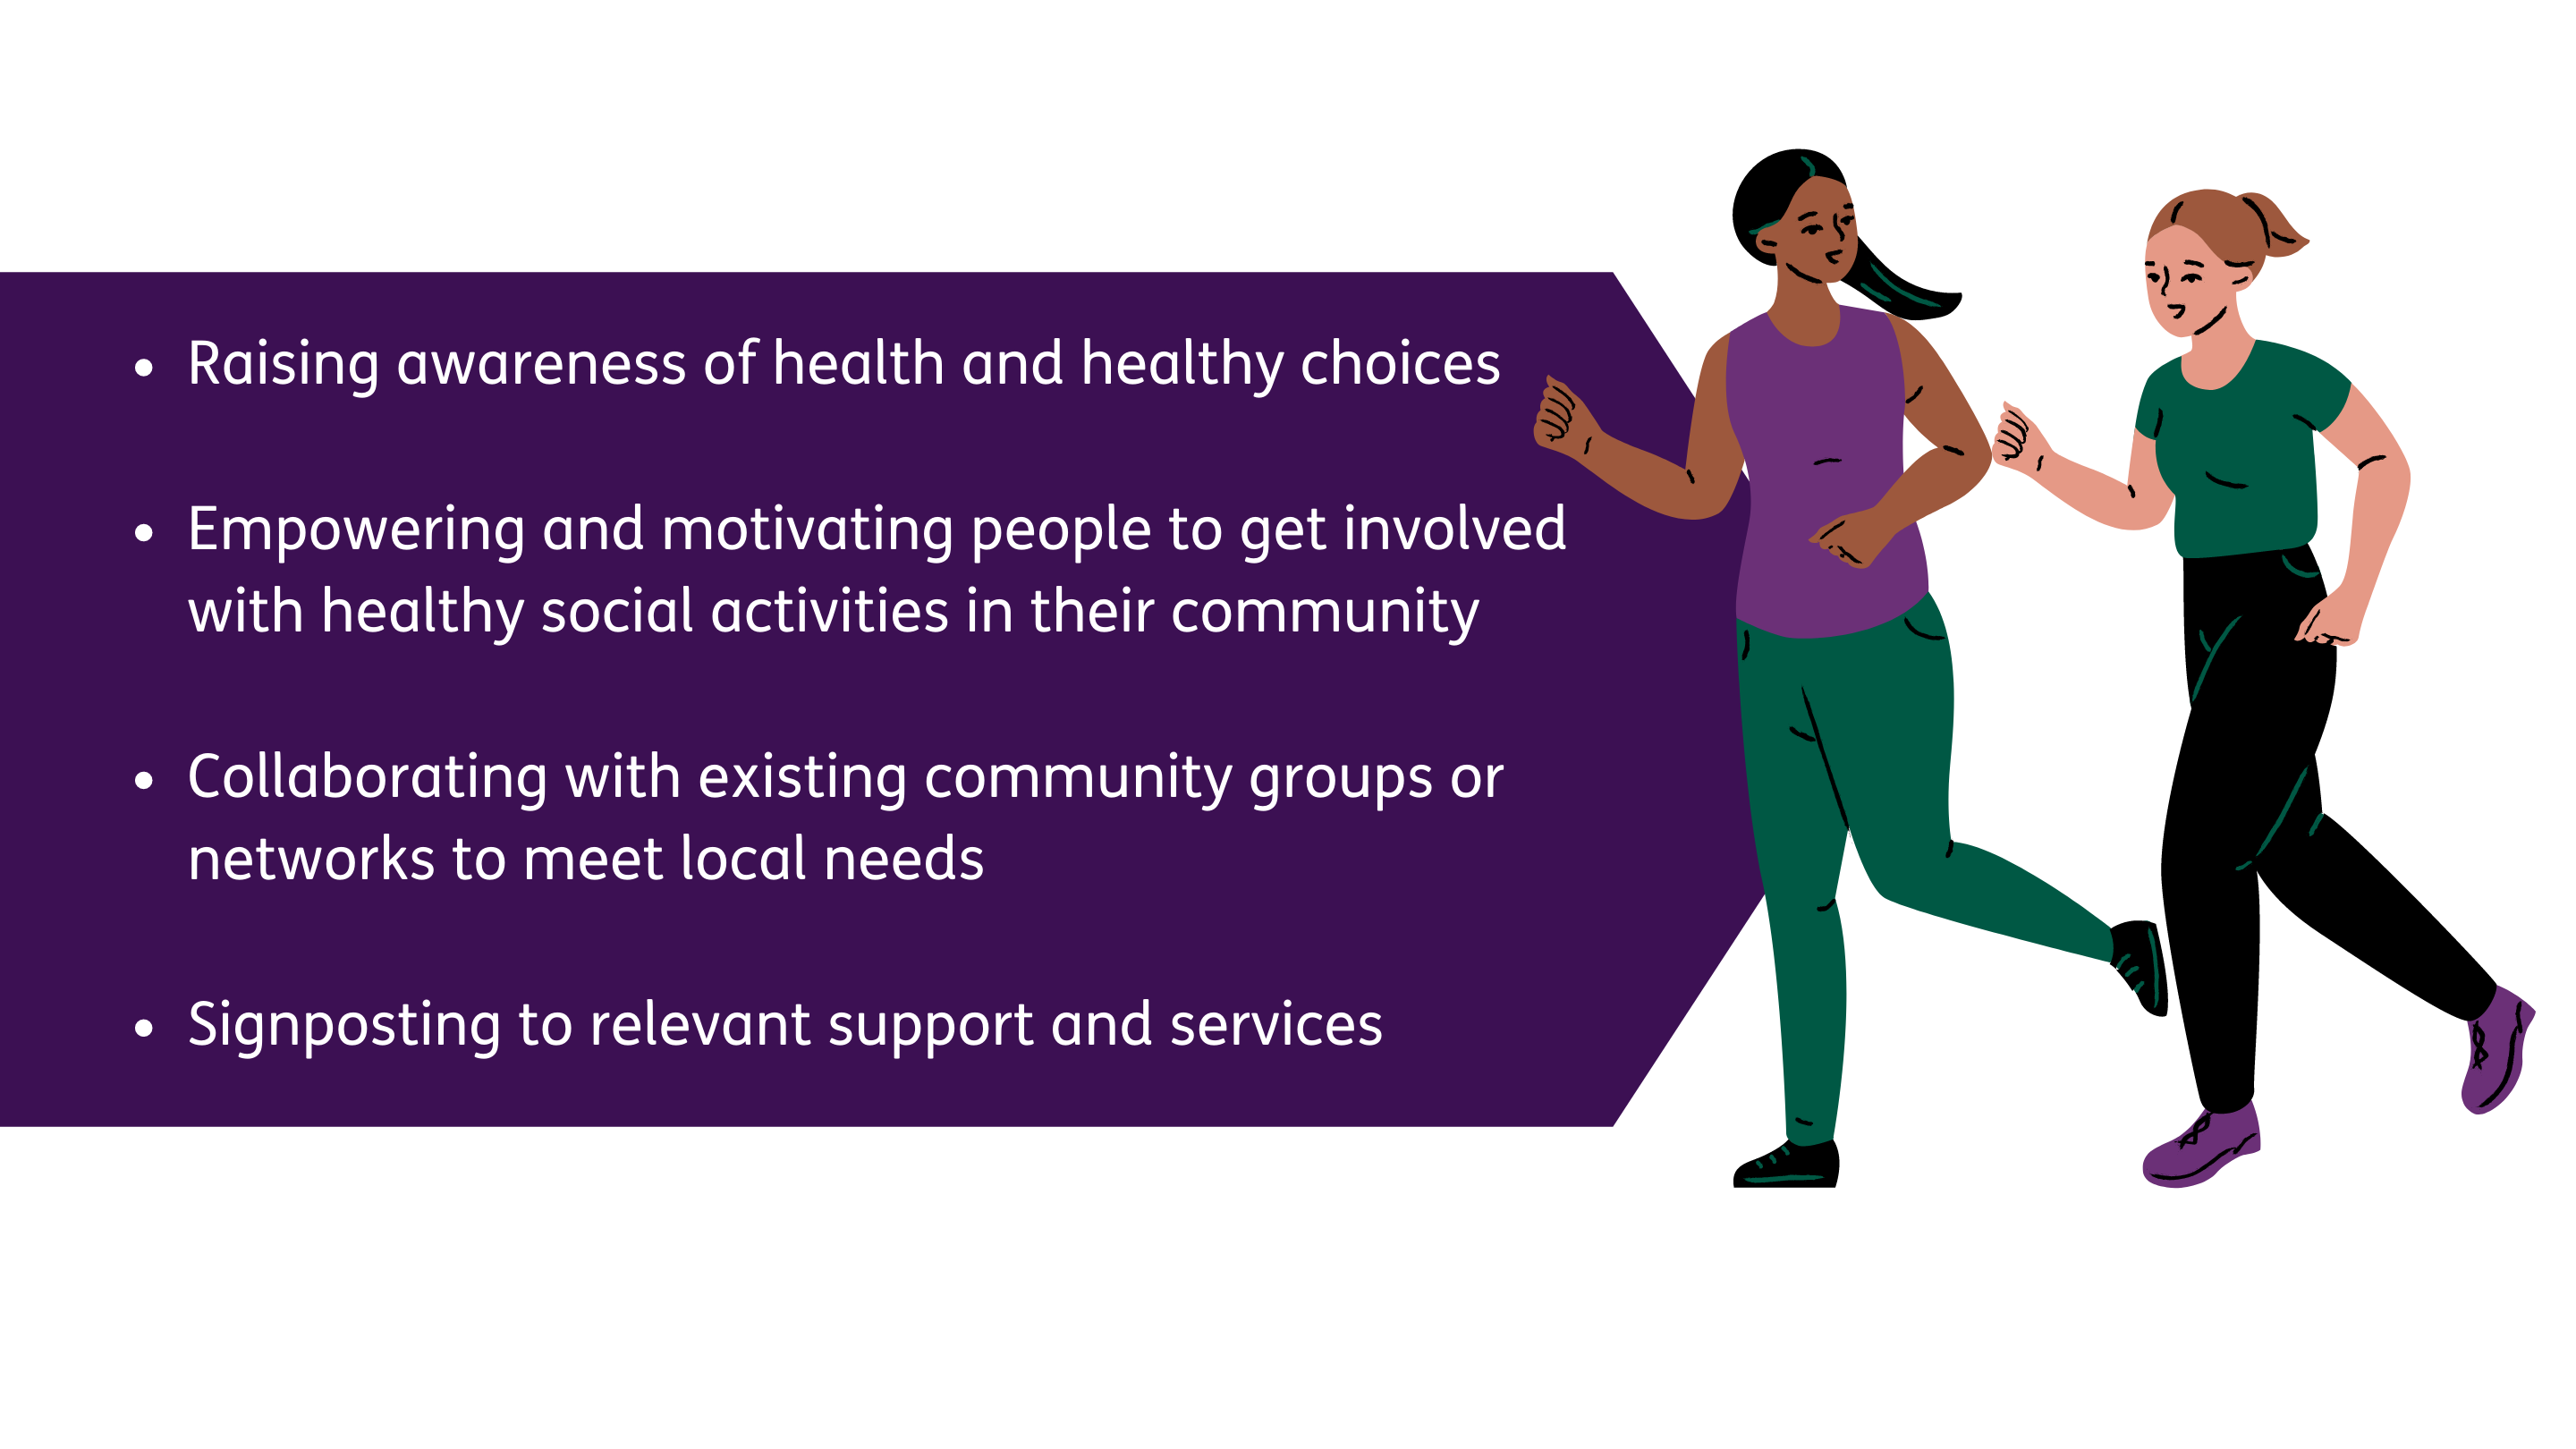 Raising awareness of health and healthy choices Empowering and motivating people to get involved with healthy social activities in their community Collaborating with existing community groups or networks to meet local needs Signposting to relevant support and services